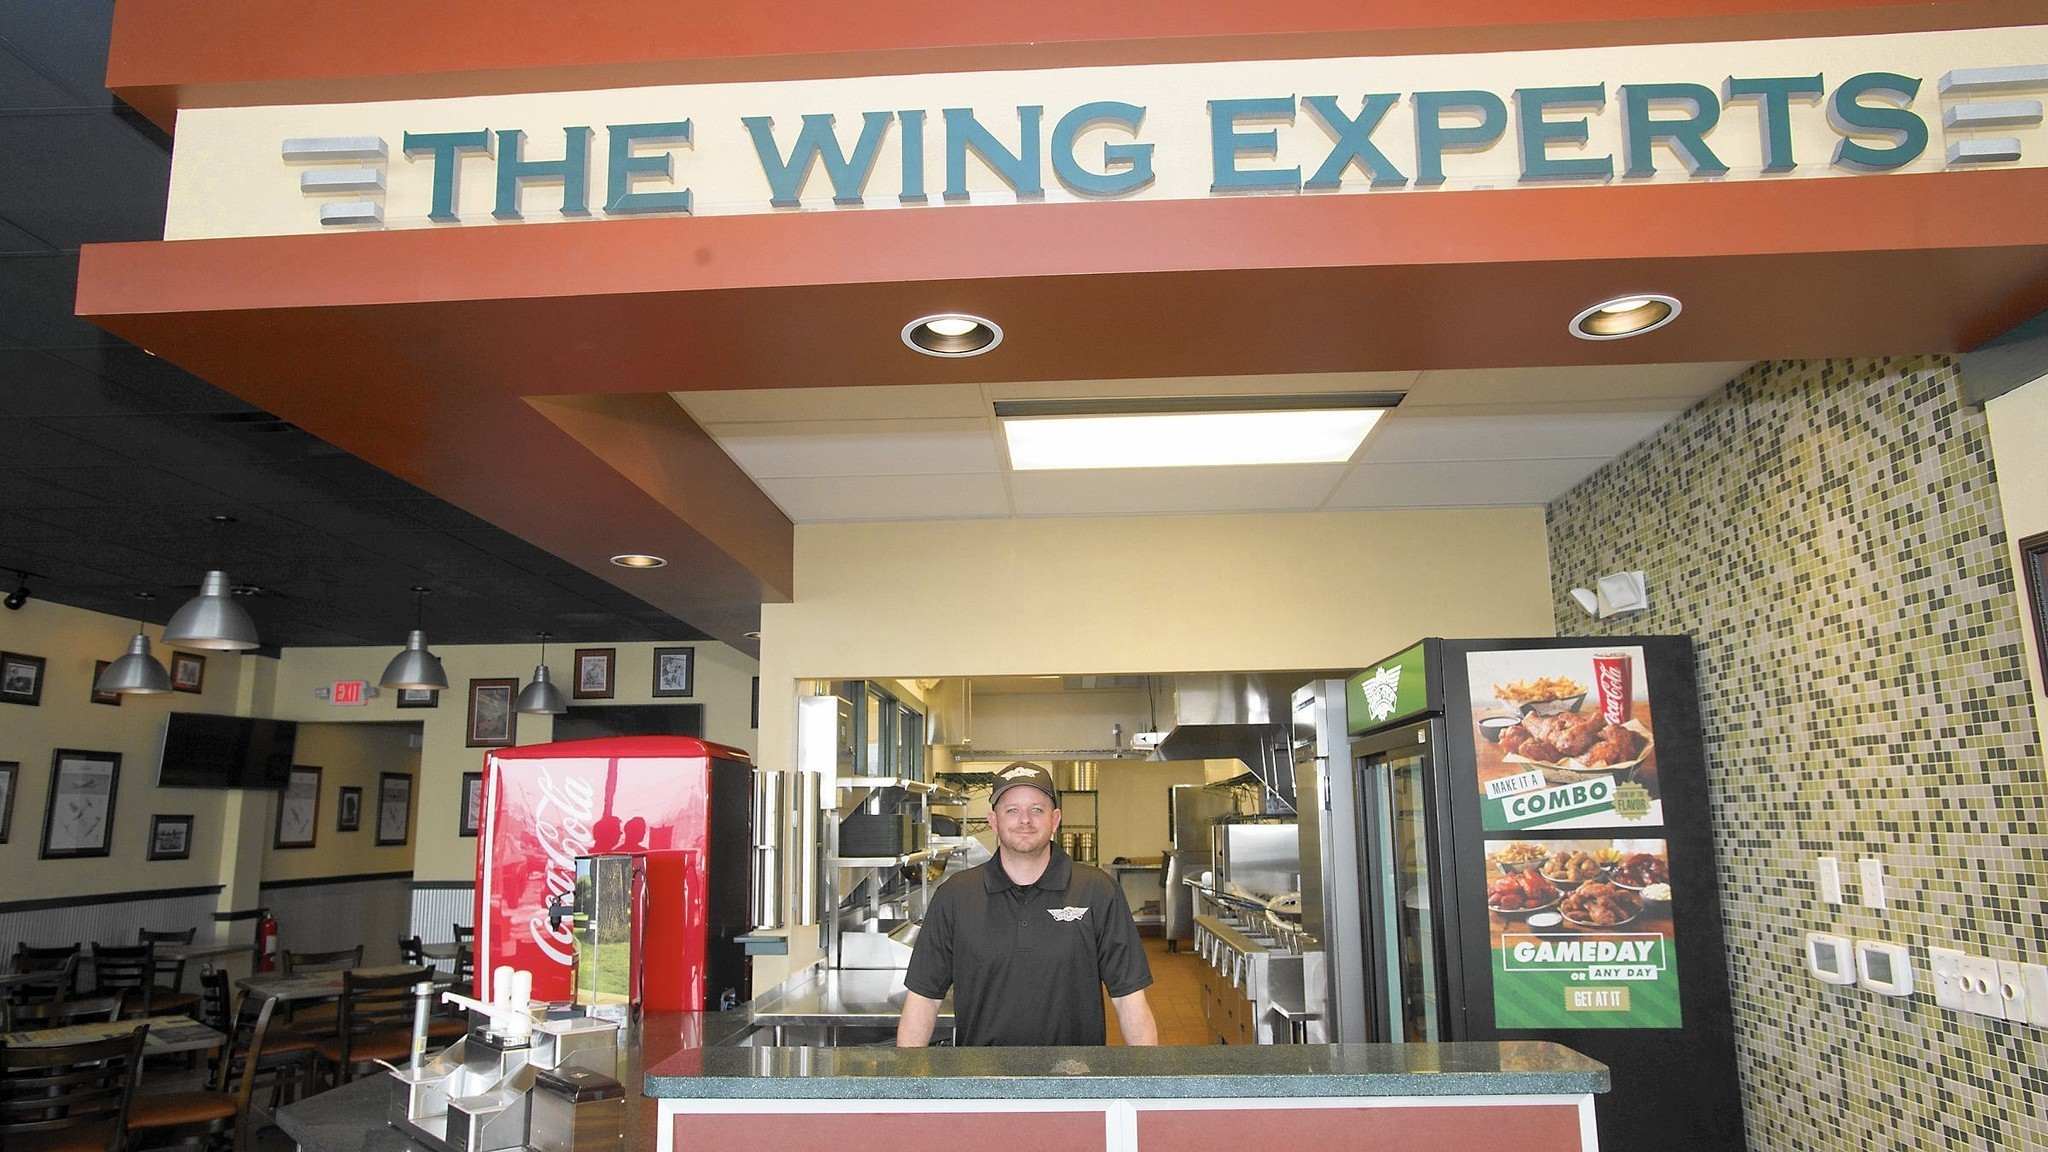 Operating for over 30 years Panda Express is a chain of Chinese Restaurants offering a varied menu of Orange chicken, Kung Pao Chicken and spring rolls all with fresh vegetables and stir fried rice.